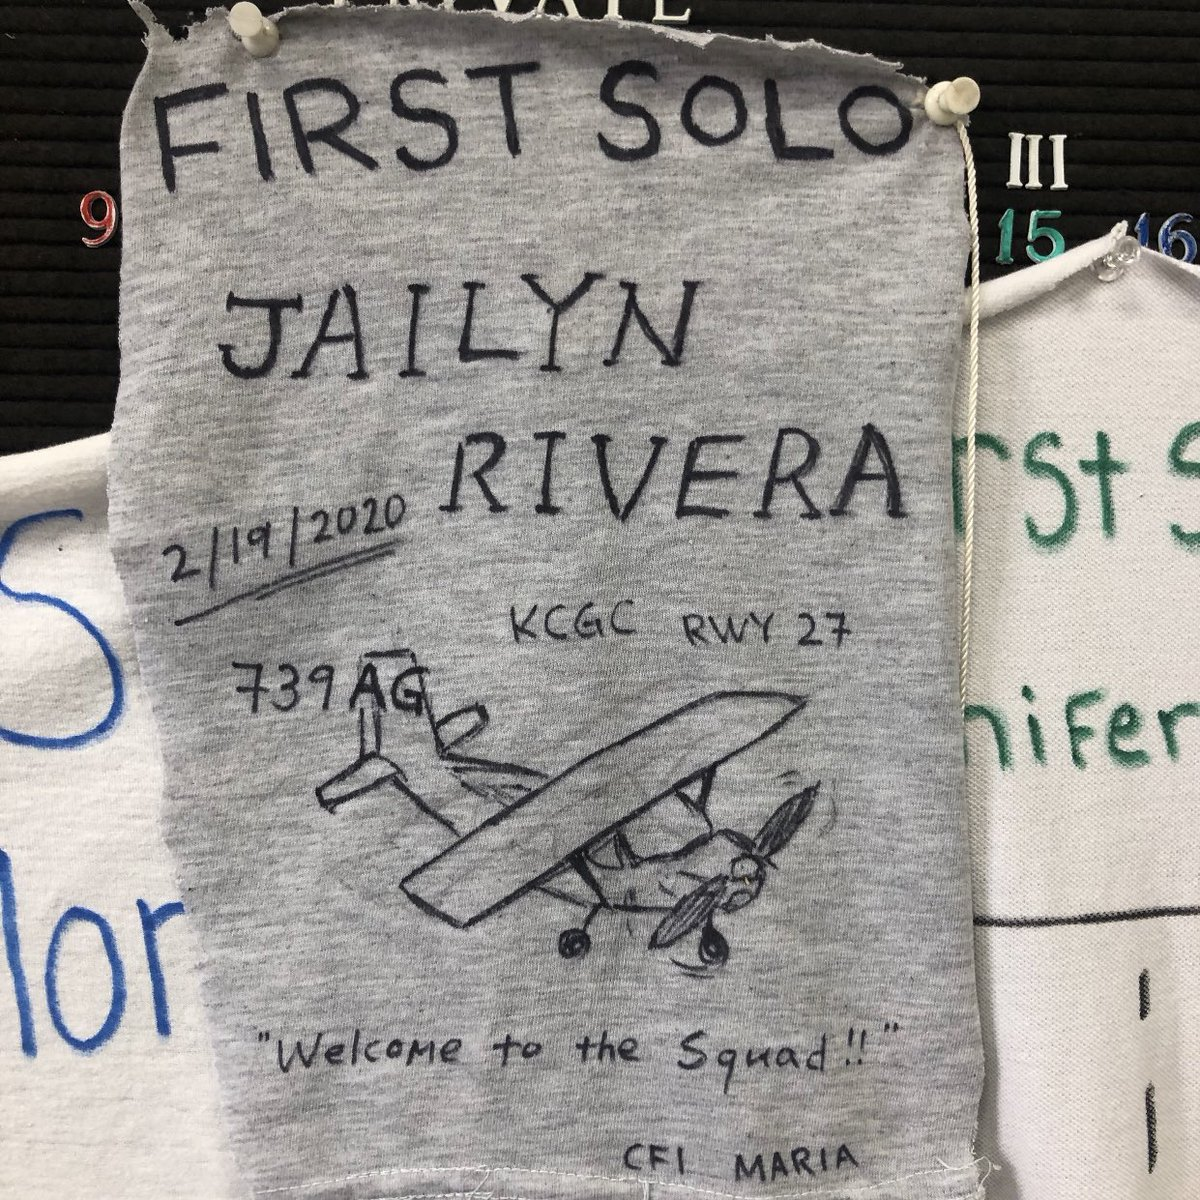 Our USAFA candidate, Jailyn Rivera slipped the bonds of earth by herself last week with her first solo flight!  The future is bright for this young lady!  @CHSCanes #onehurricane #AFJROTC<br>http://pic.twitter.com/cKYFnKZvF3